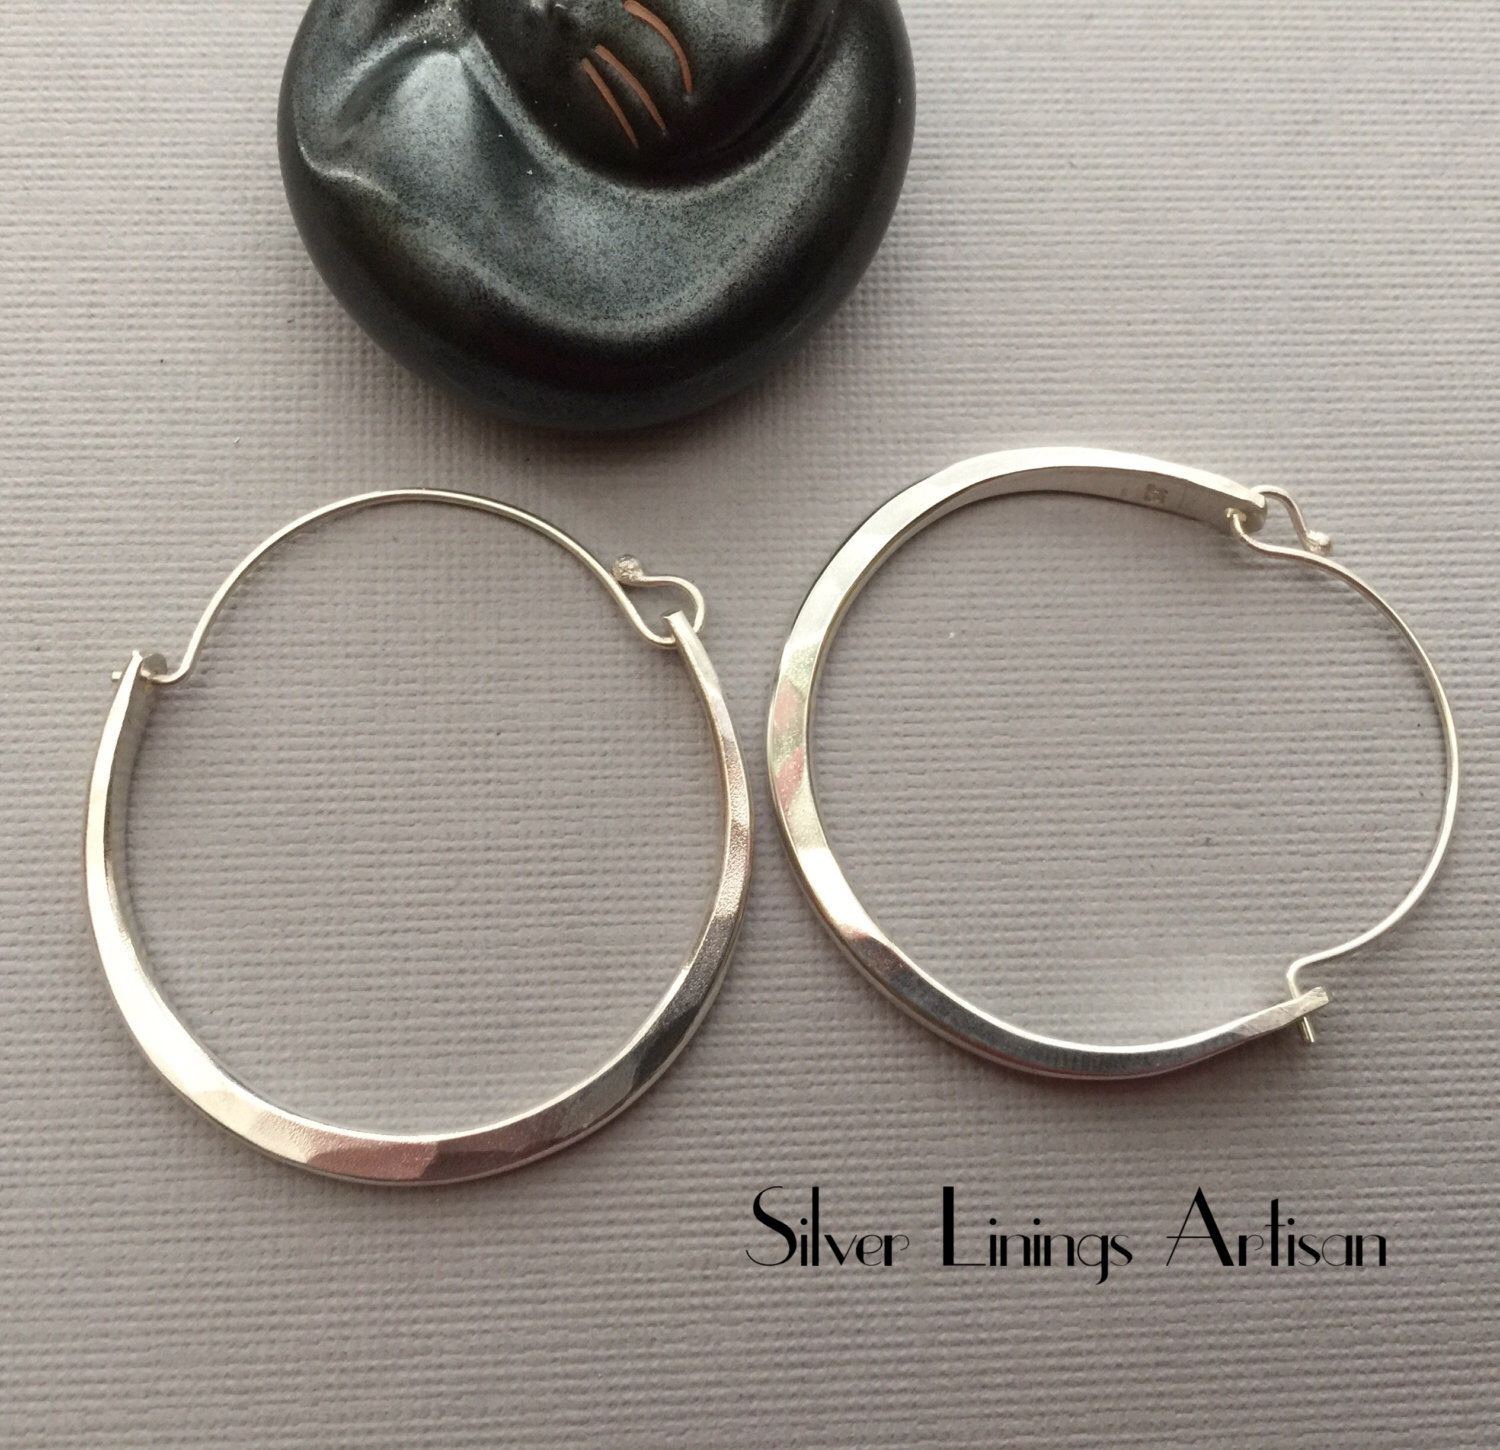 finish hammered Handmade Sterling Silver large crescent studs earrings in a planished